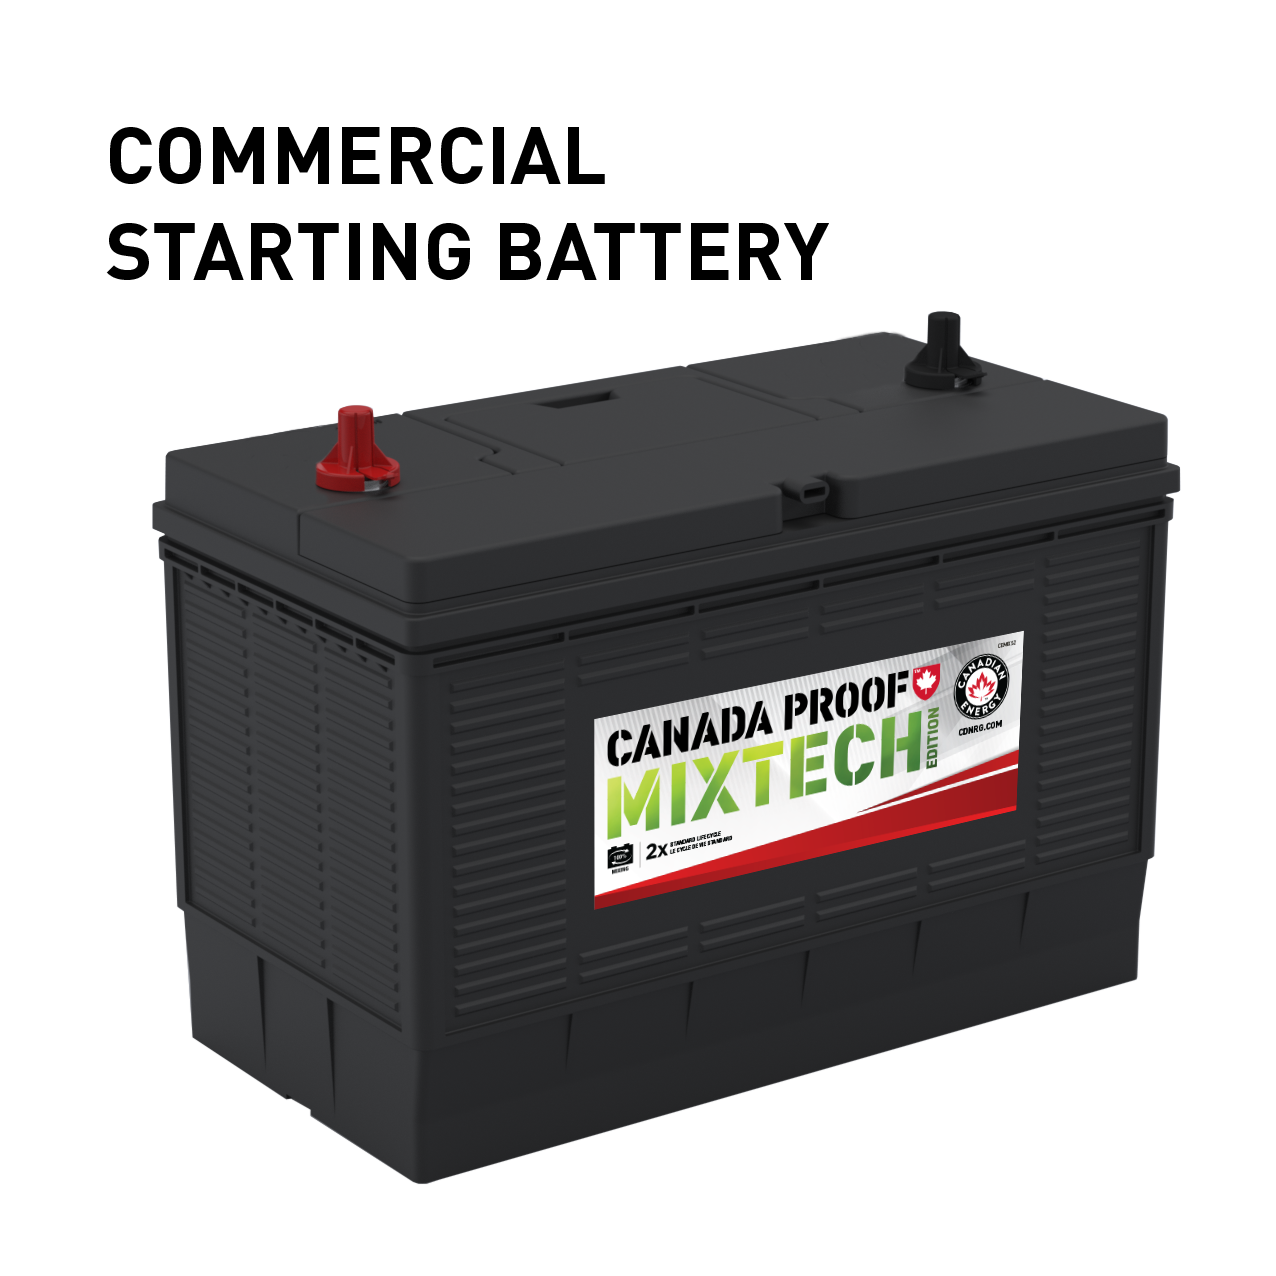 CP MIXTECH Commercial Starting Battery